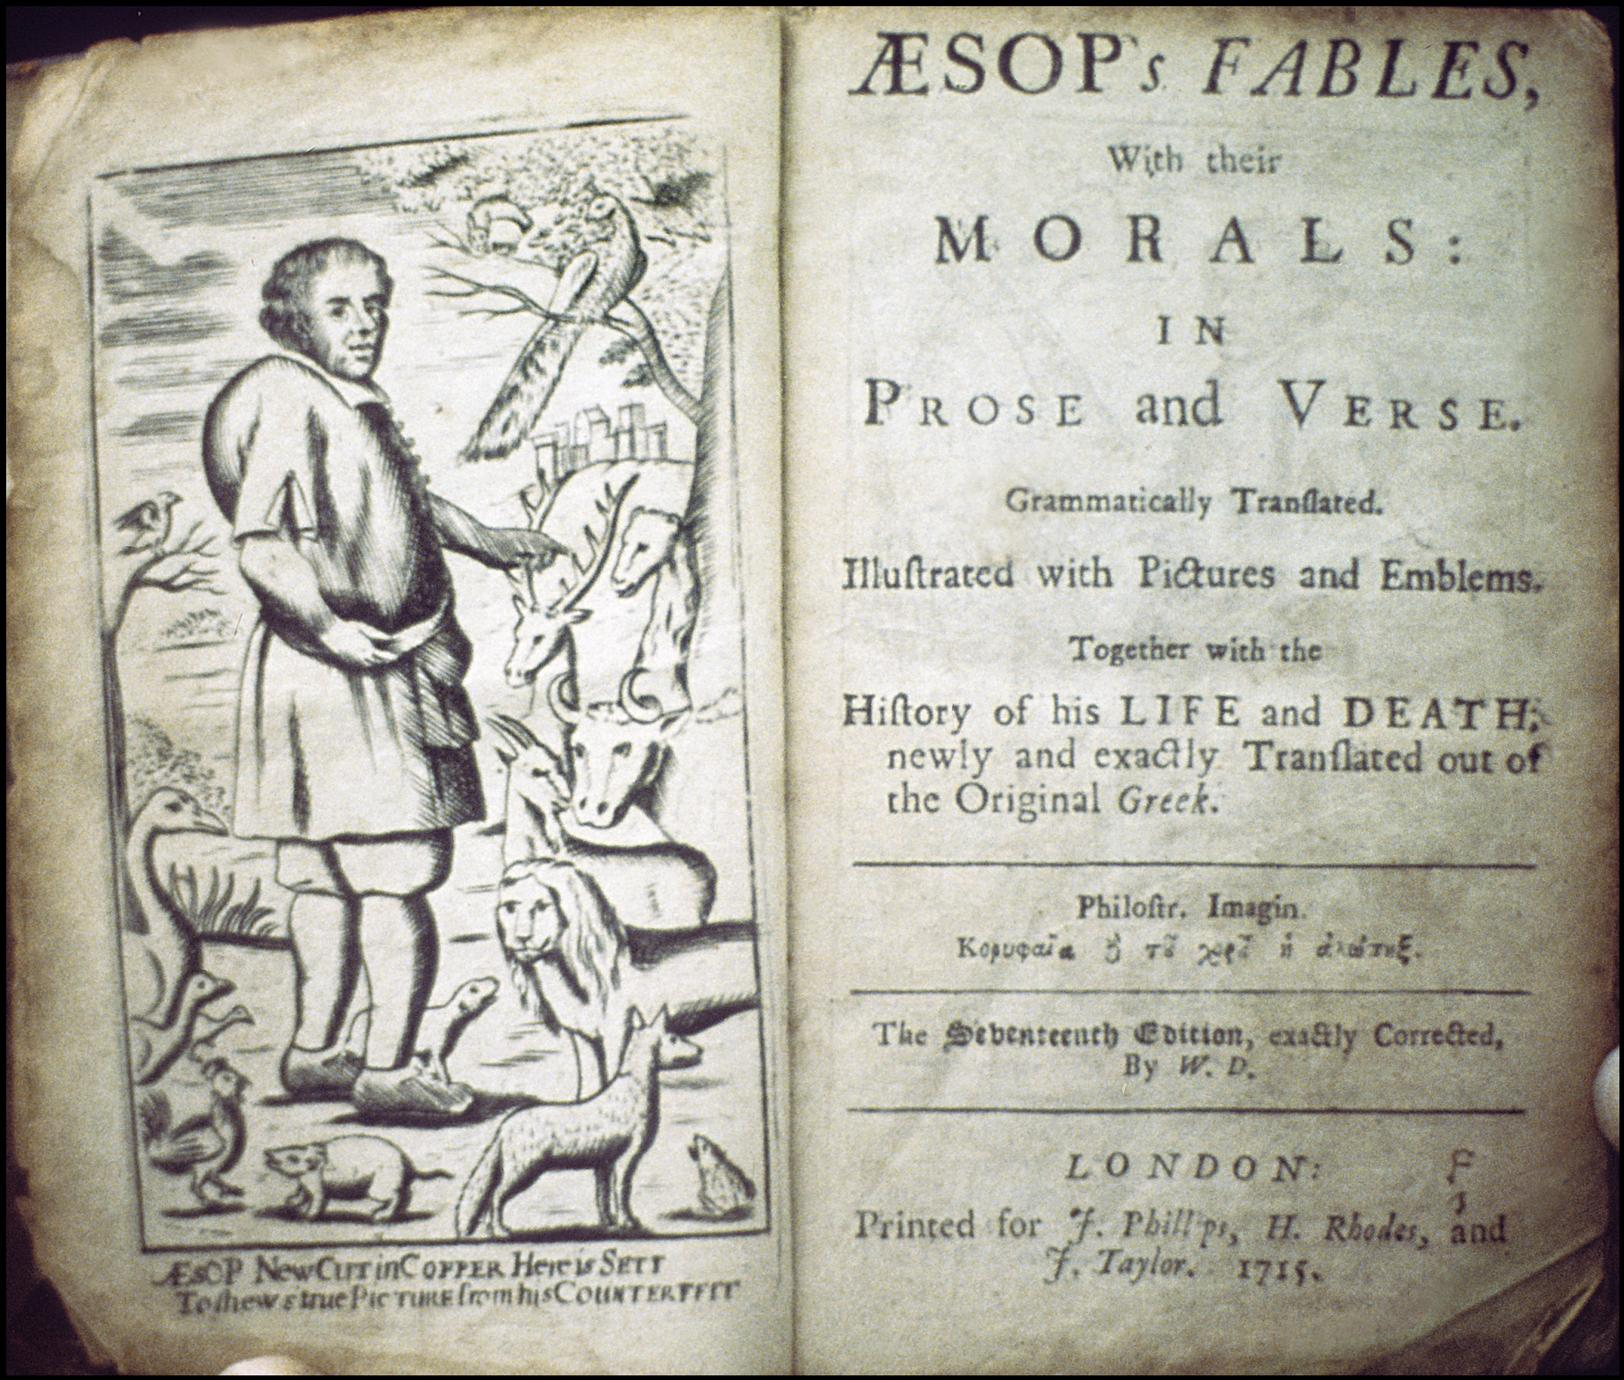 A List Of Fables And Their Morals aesop's fables with their morals in prose and verse